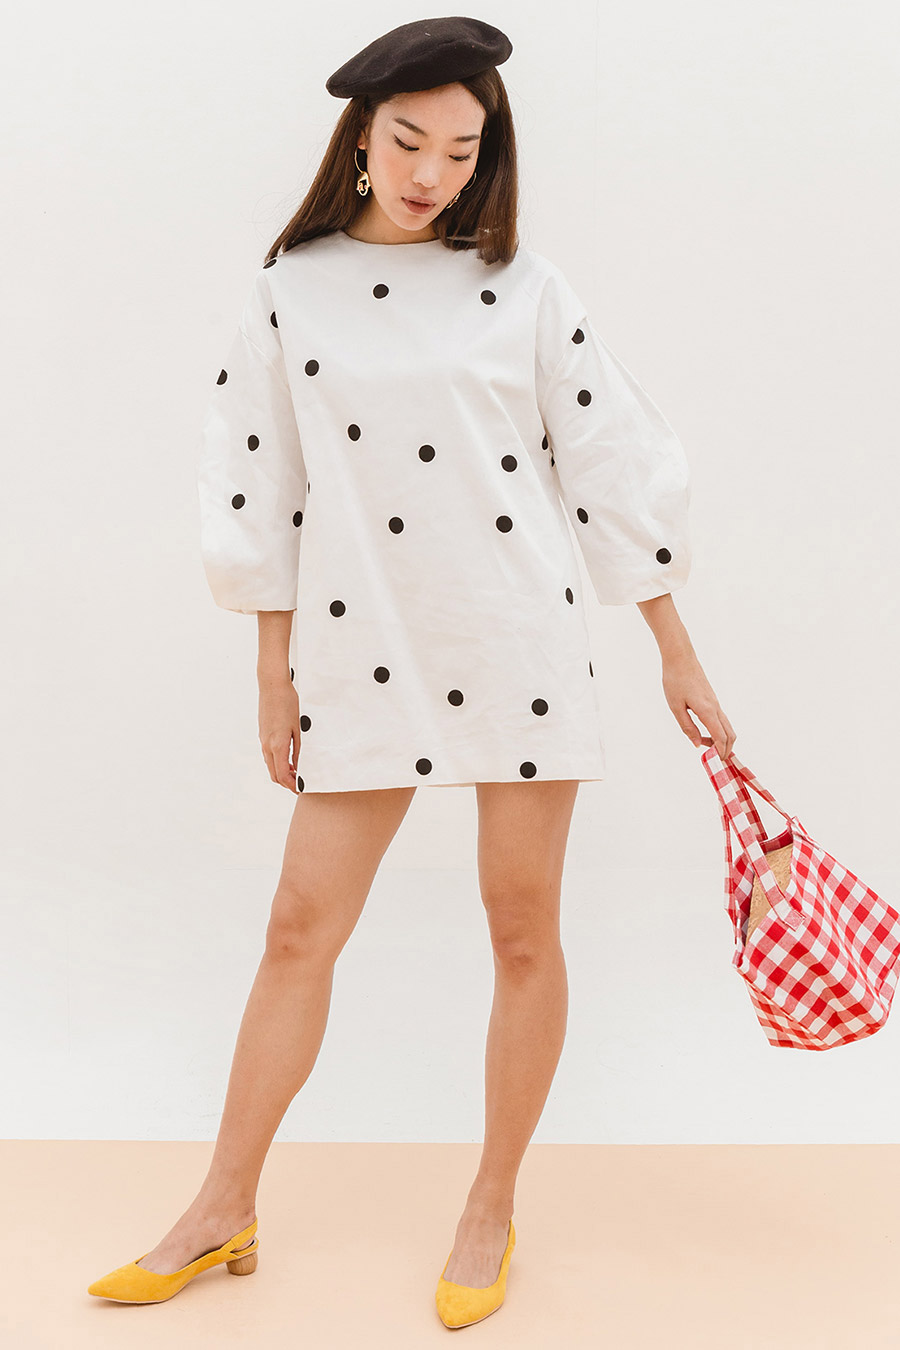 *BO* EDDA DRESS - IVORY DOTTY